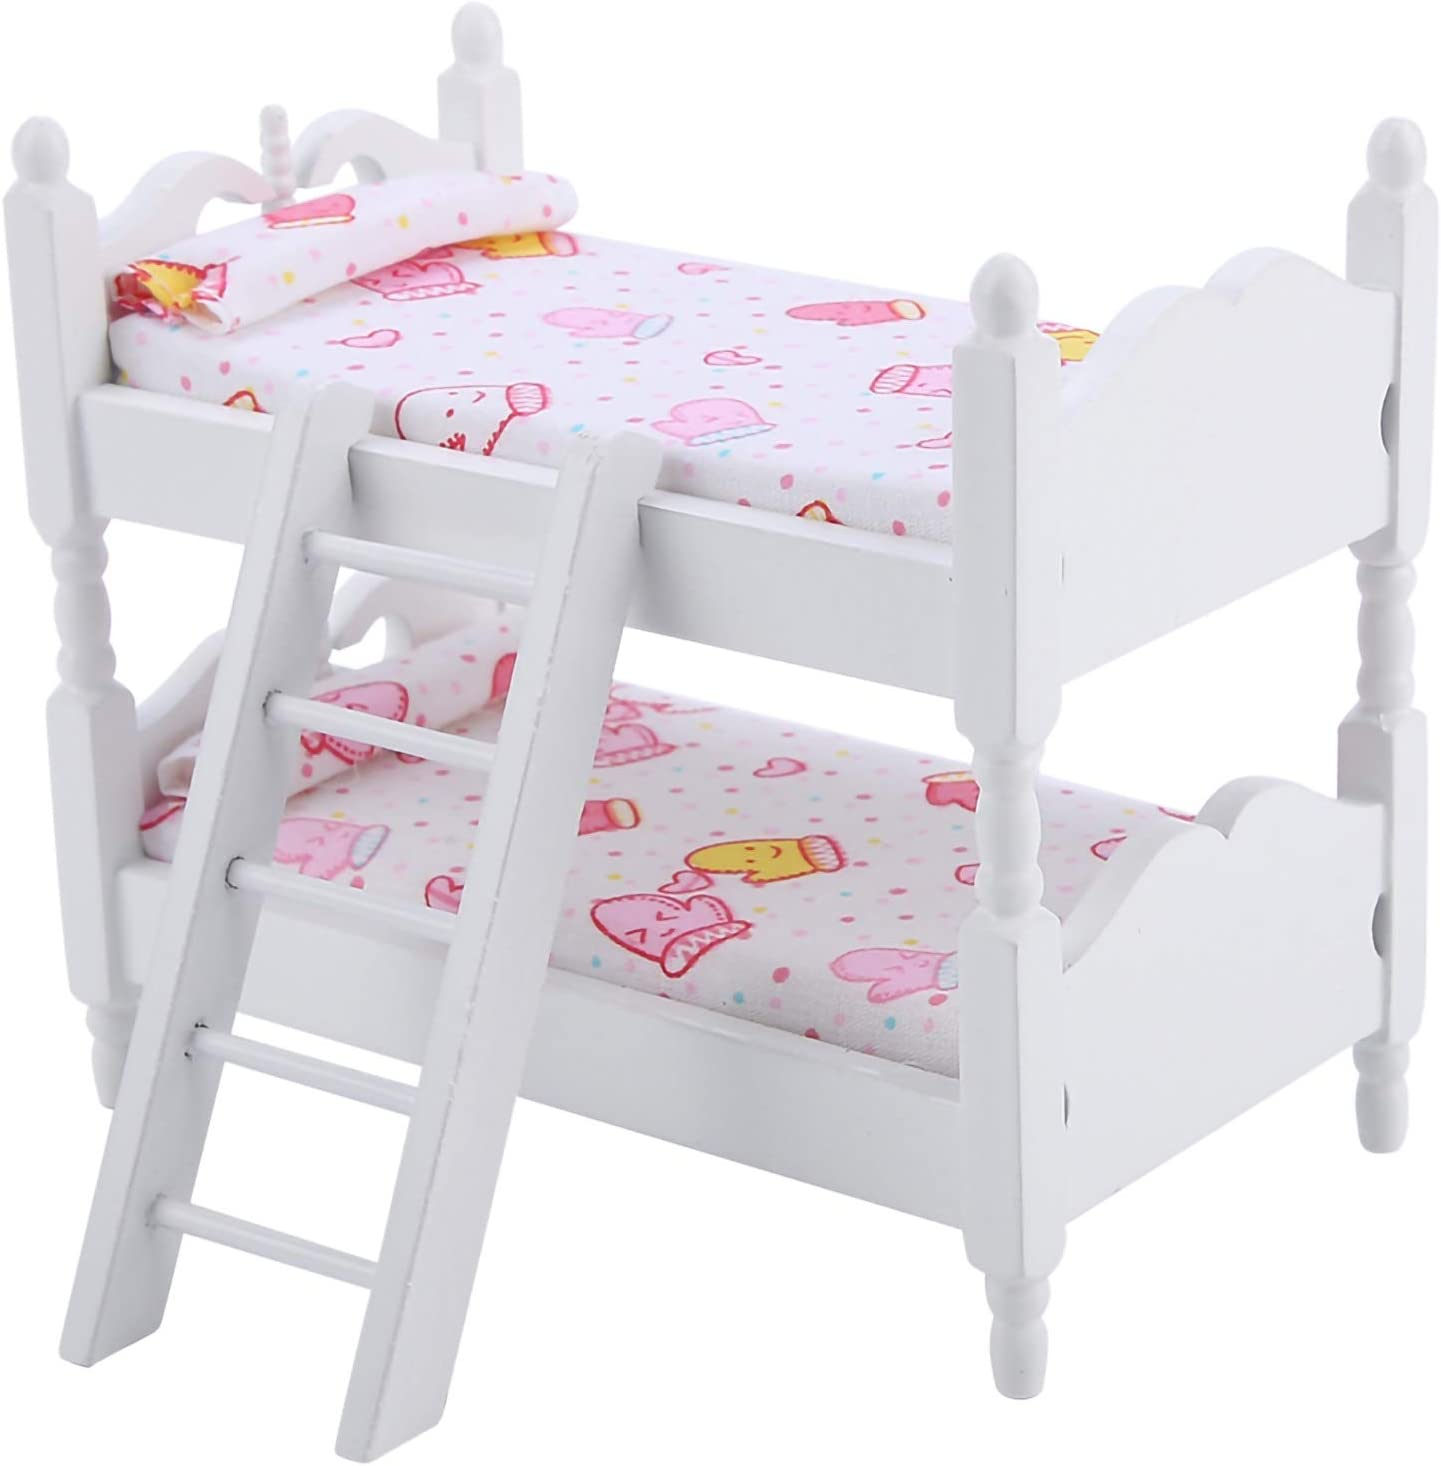 Josopa Doll House Bunk Bed Mini Furniture Dollhouse Children Bedroom Bunk Bed Model Wood Toys for 1:12 Doll Furniture